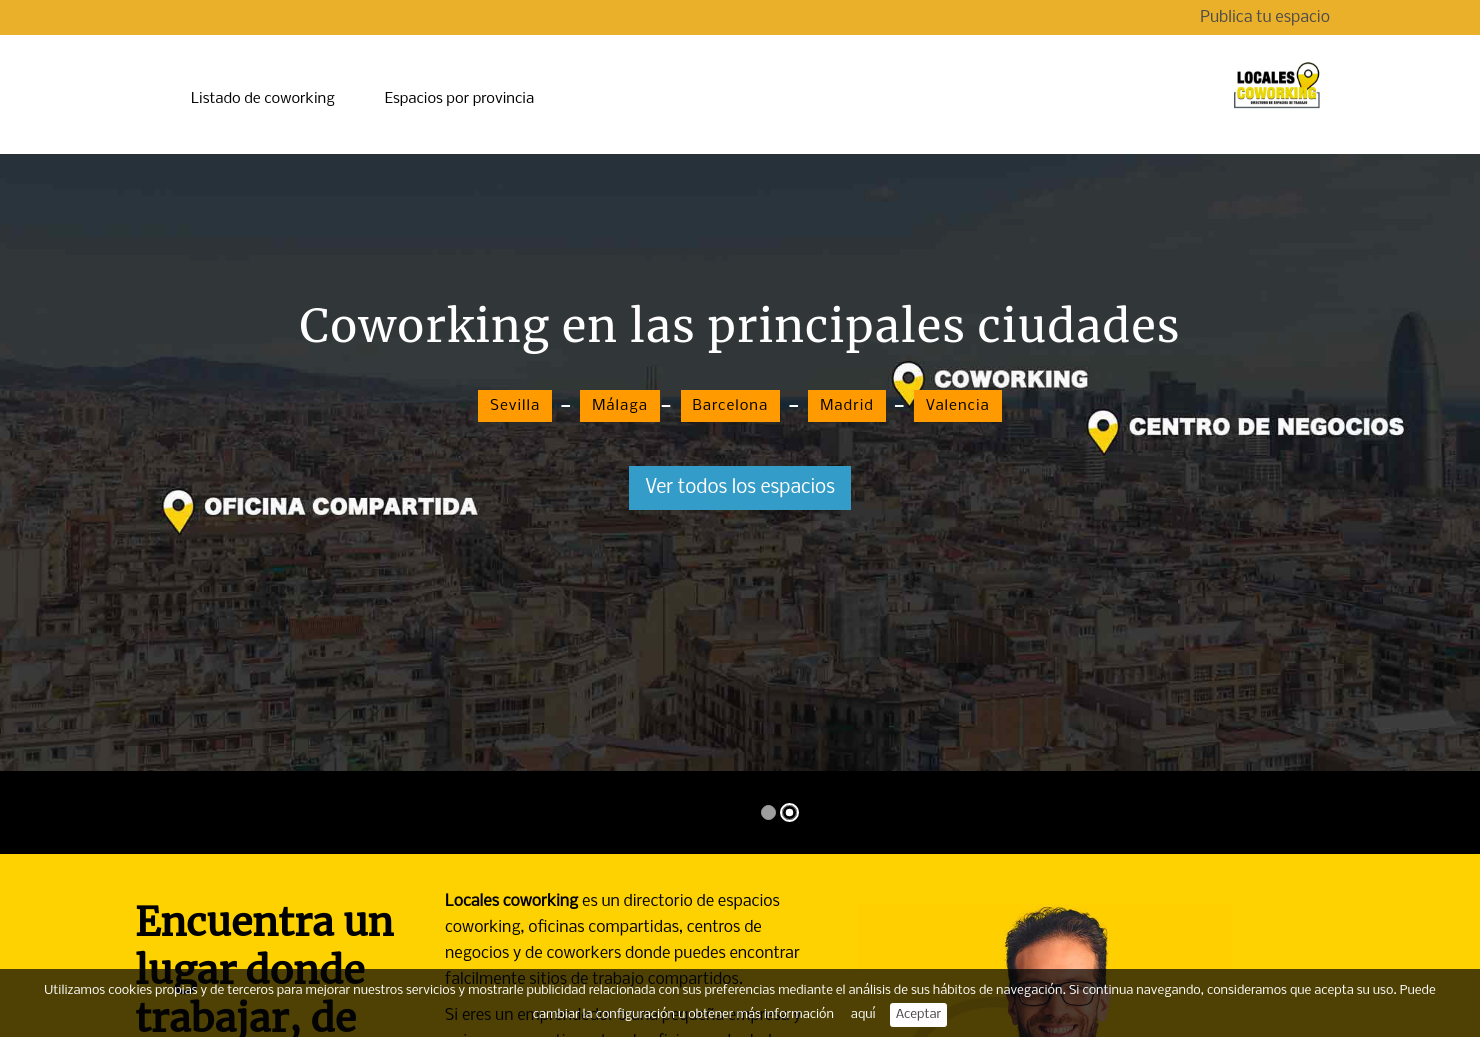 http://localescoworking.es/